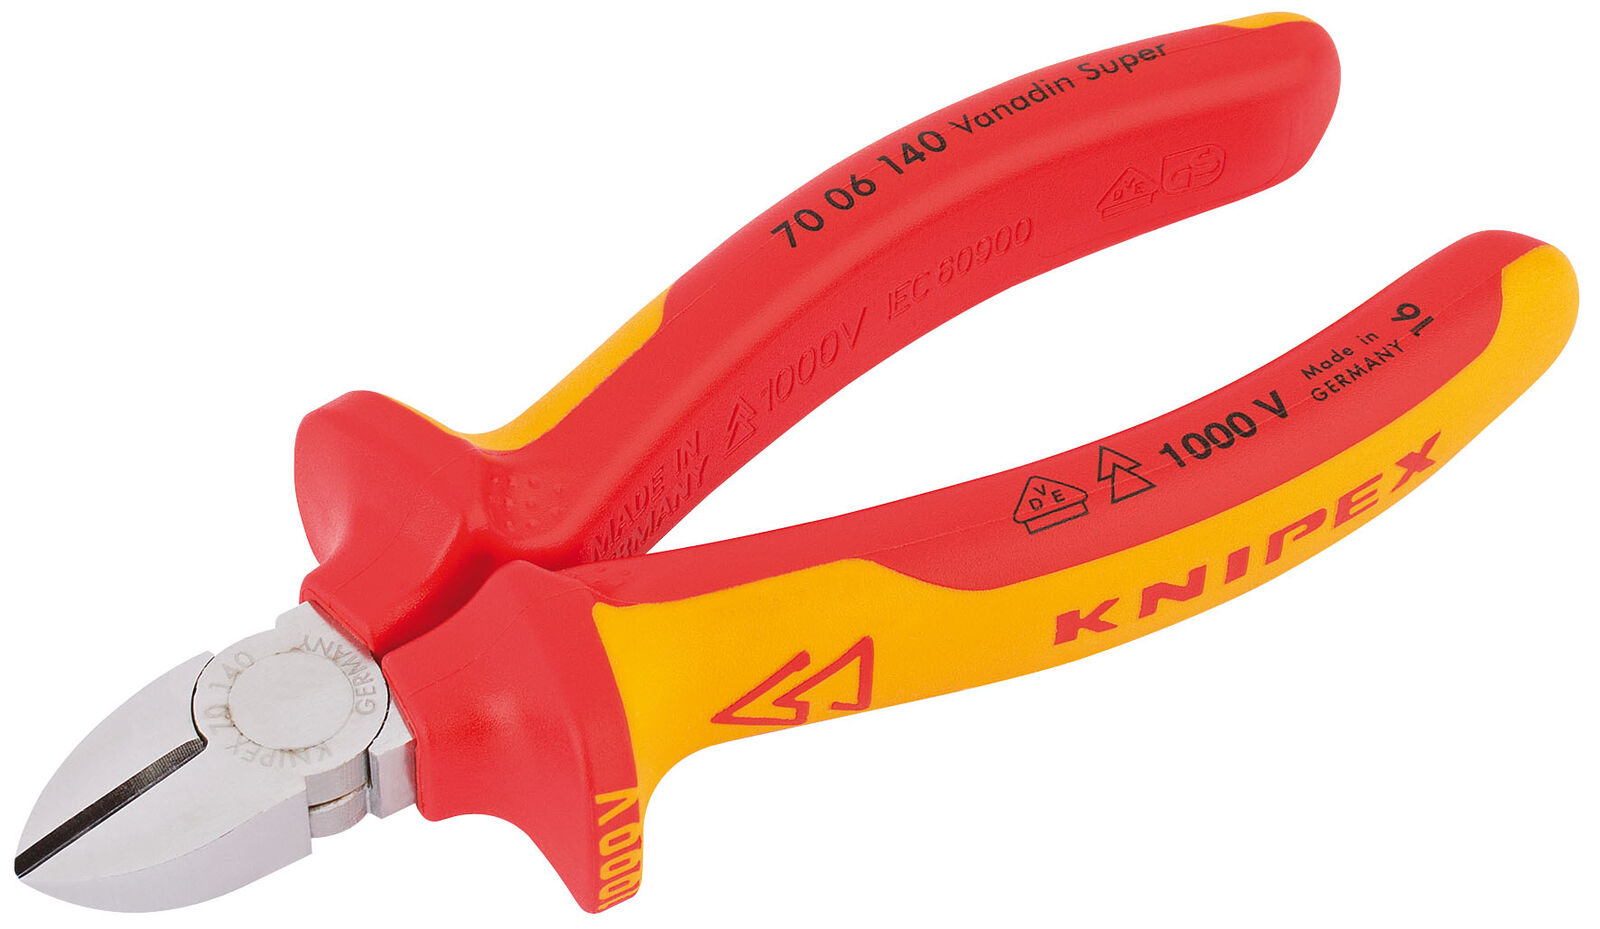 Knipex 140Mm Fully Insulated Diagonal Side Cutter Draper 81254